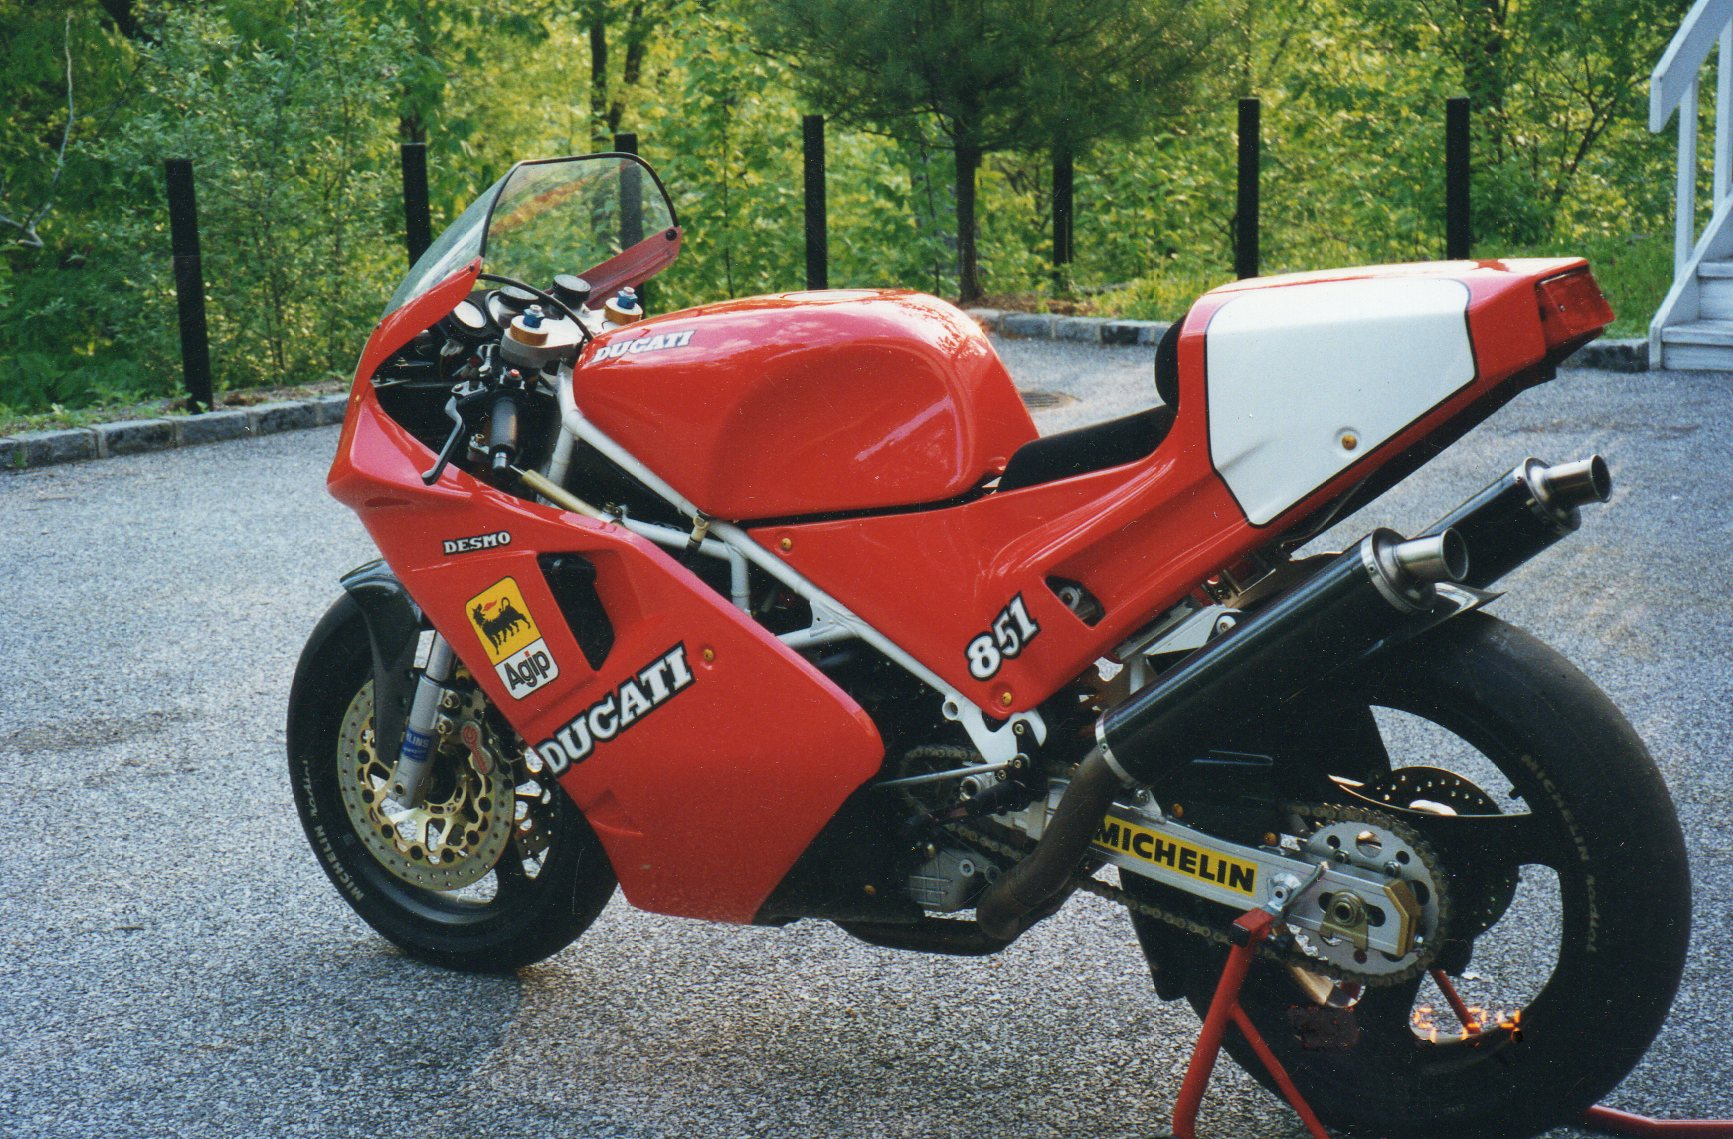 Ducati 851 SP 3 wallpapers #10643